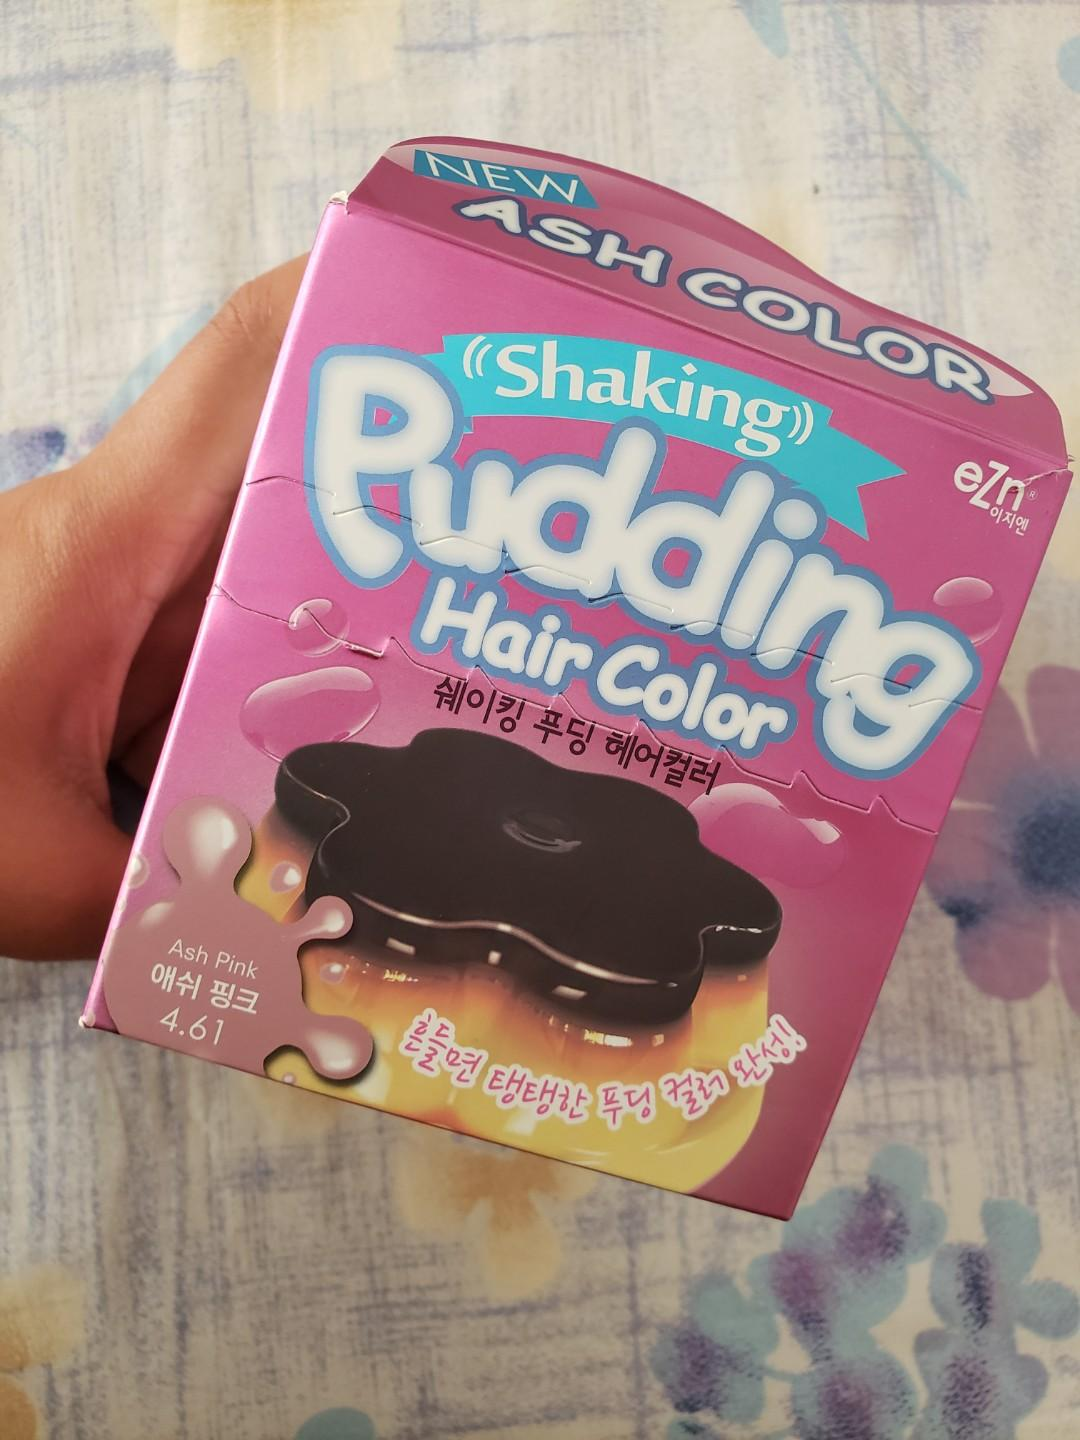 Shaking pudding ash pink hair color